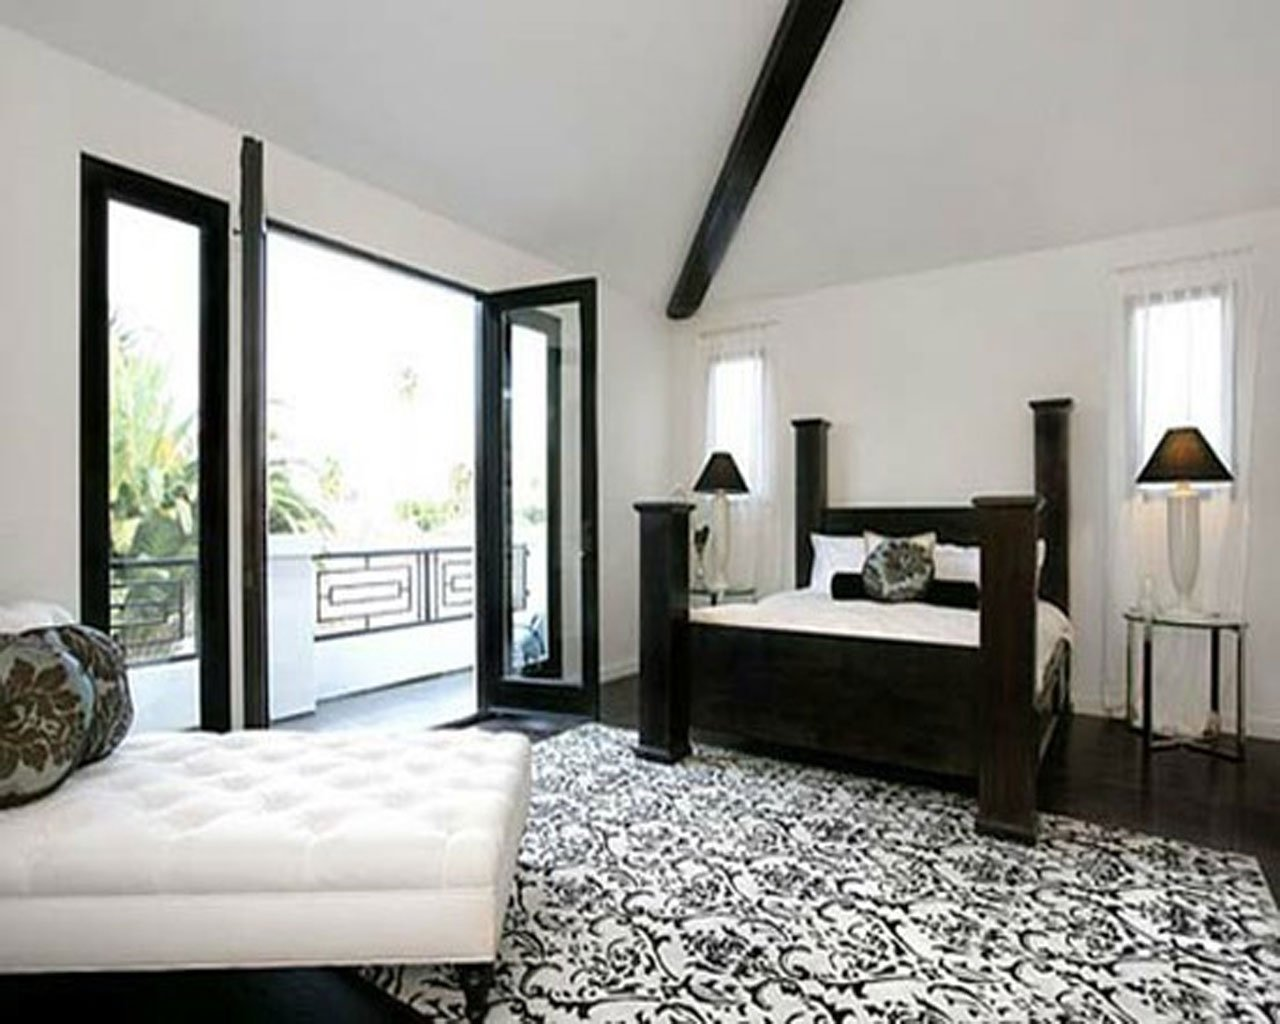 10 Awesome Black And White Room Ideas awesome black and white bedroom monochrome black white bedroom